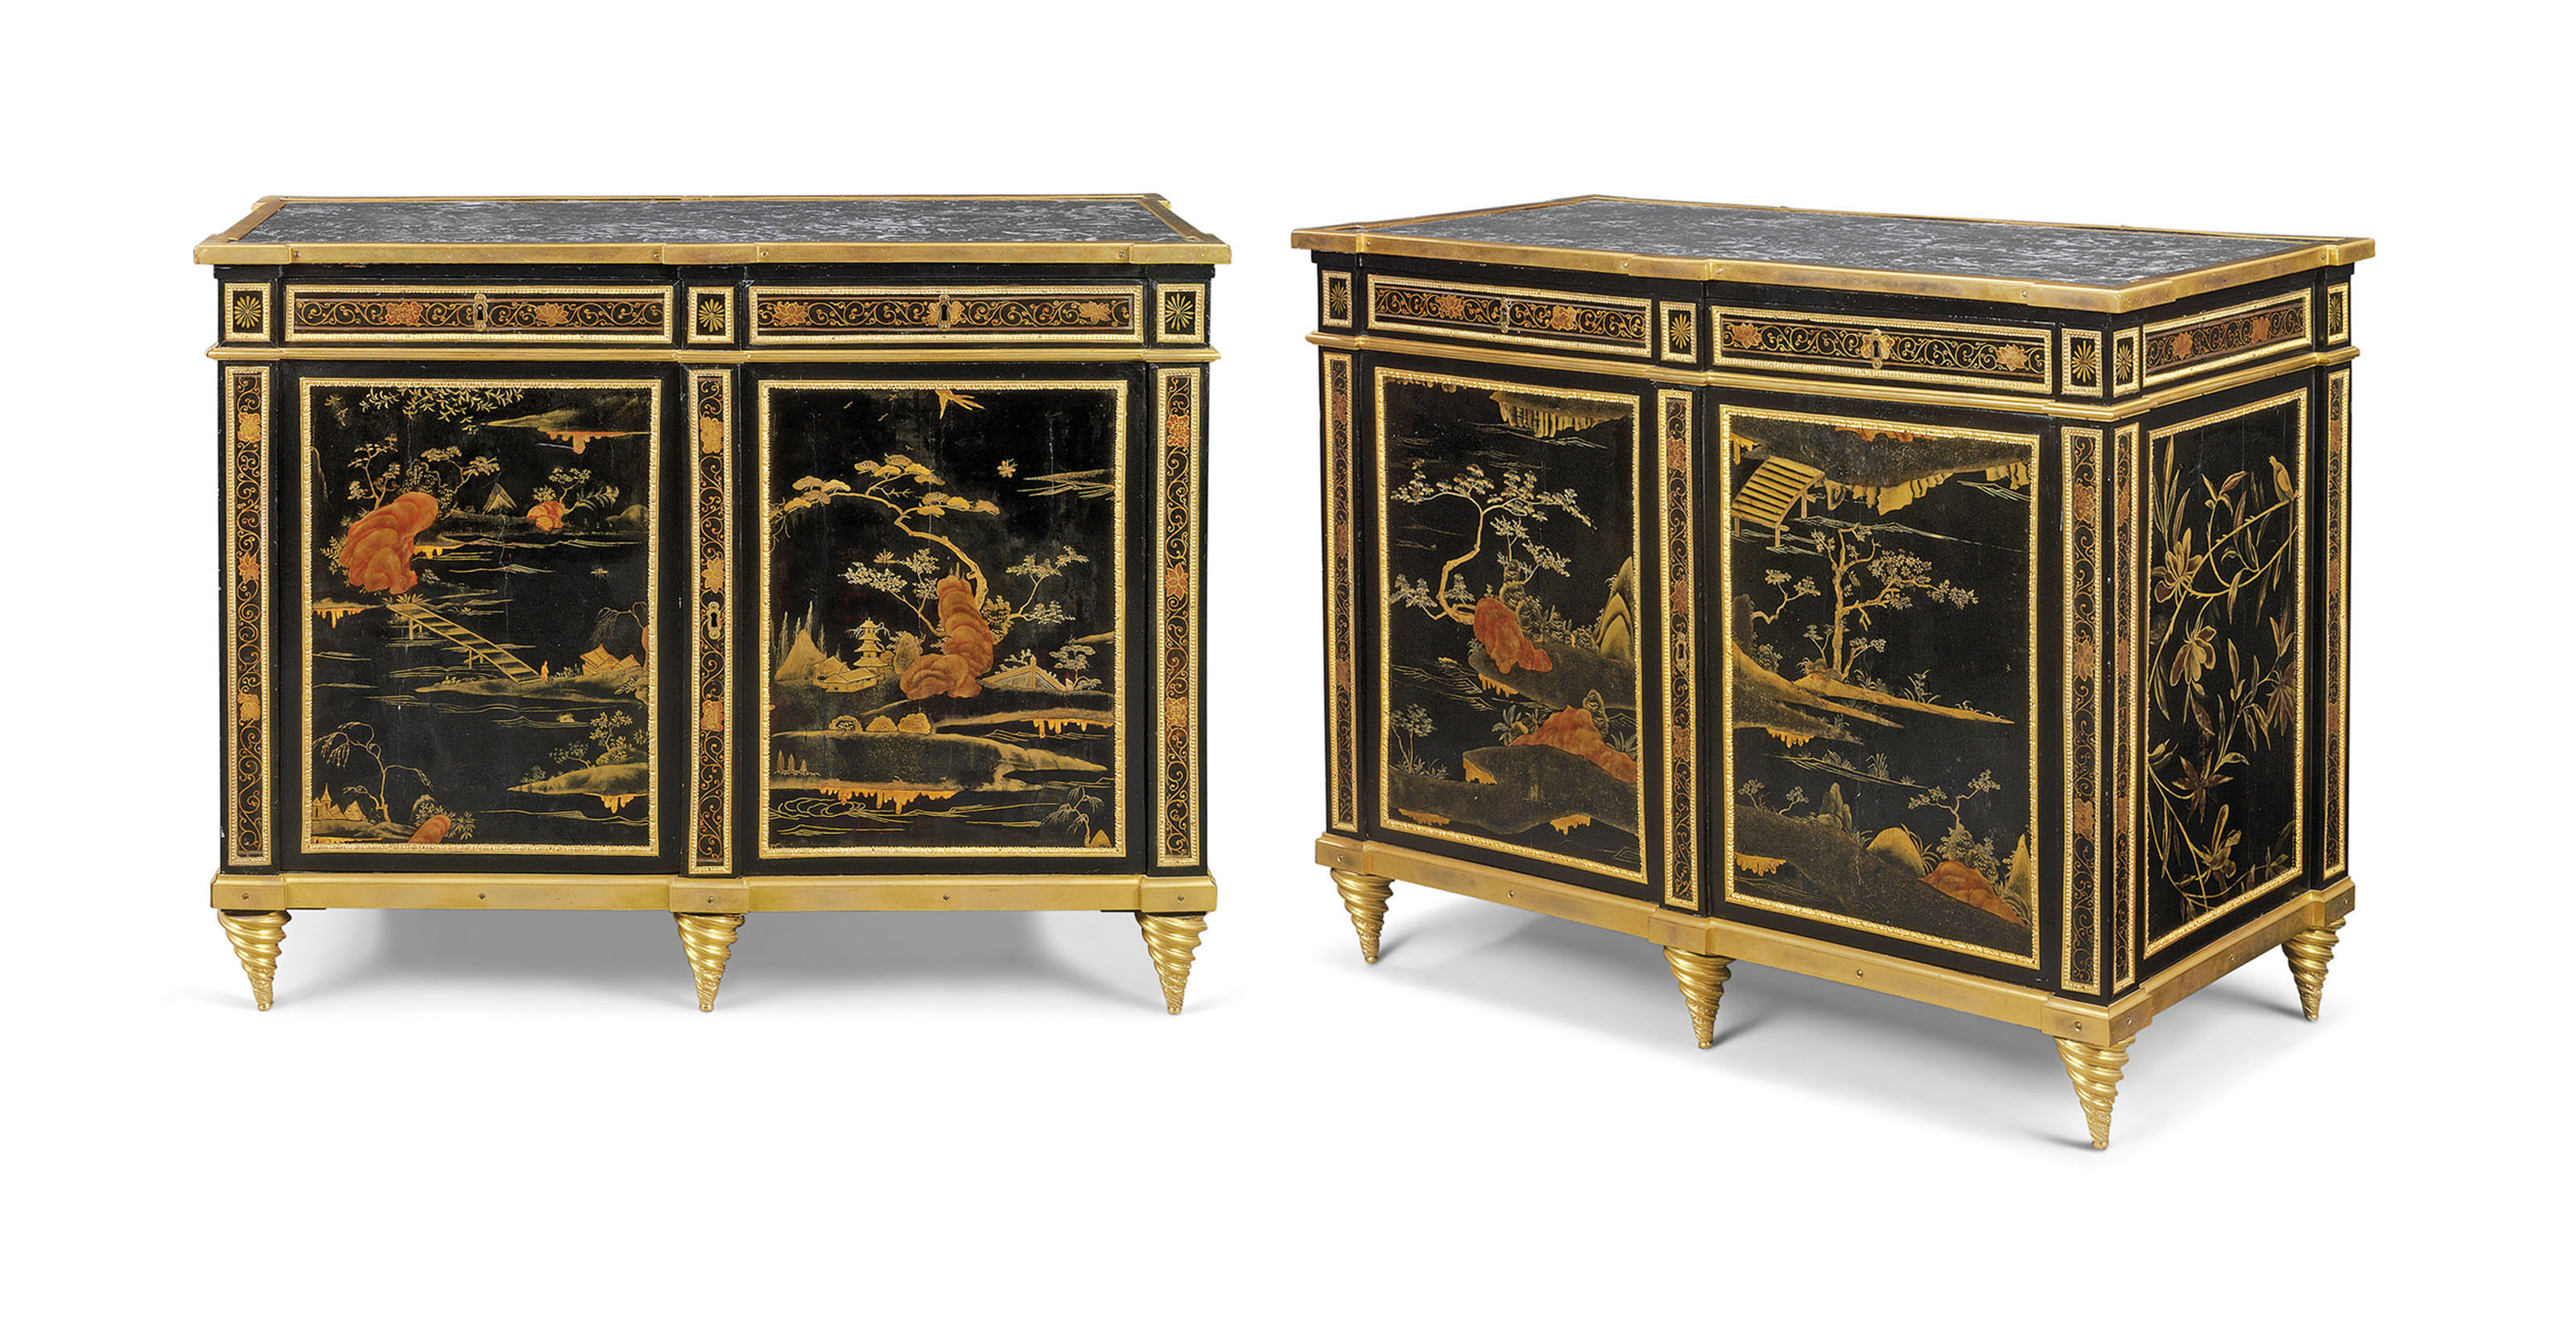 A PAIR OF LOUIS XVI ORMOLU-MOUNTED CHINESE BLACK AND GILT LACQUER AND VERNIS MARTIN COMMODES